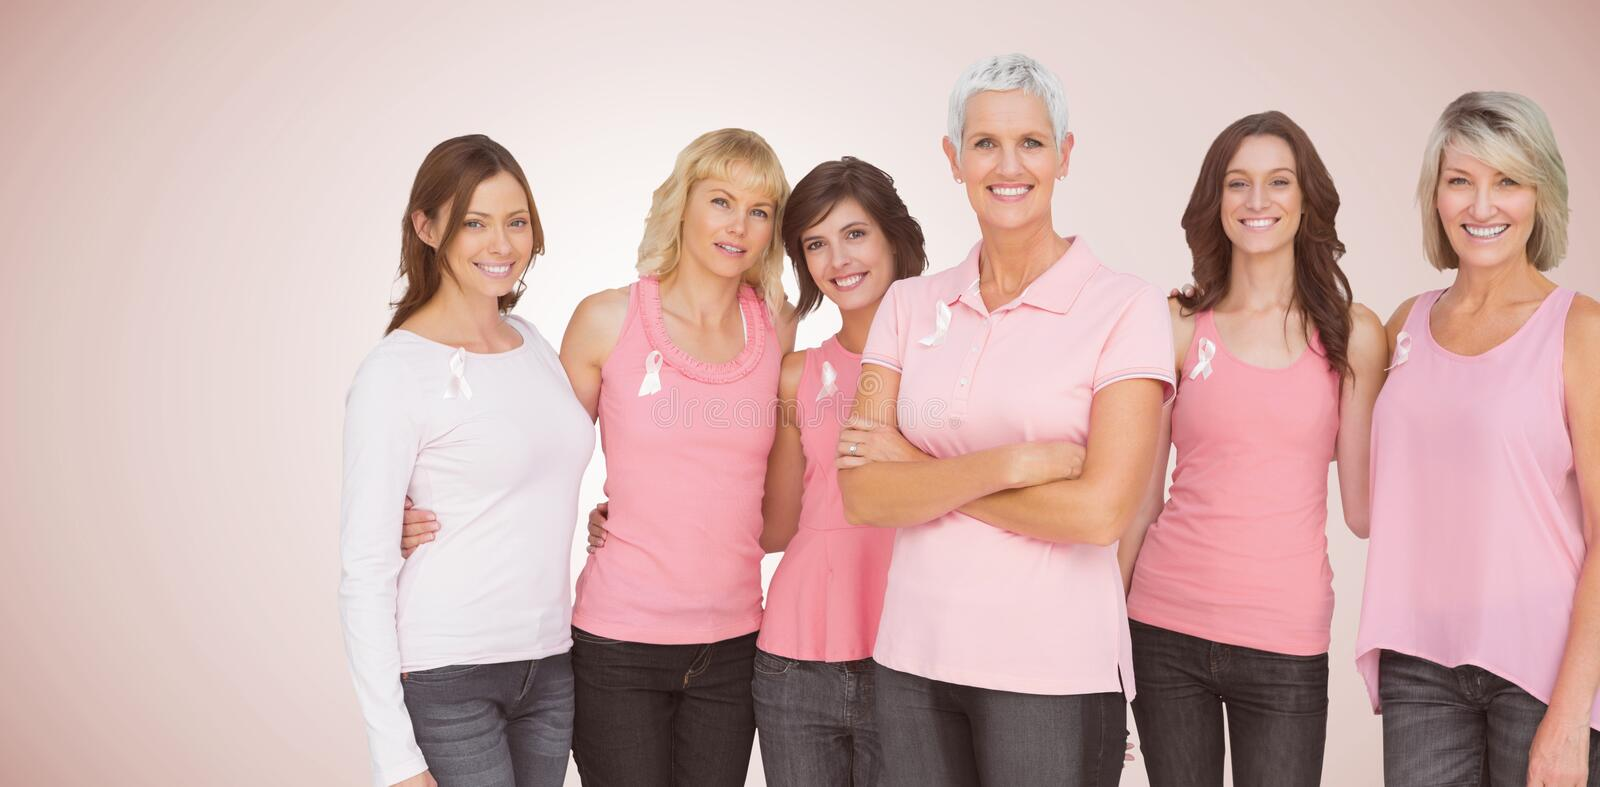 Composite image of portrait of confident women supporting breast cancer awareness. Portrait of confident women supporting breast cancer awareness against neutral stock photos